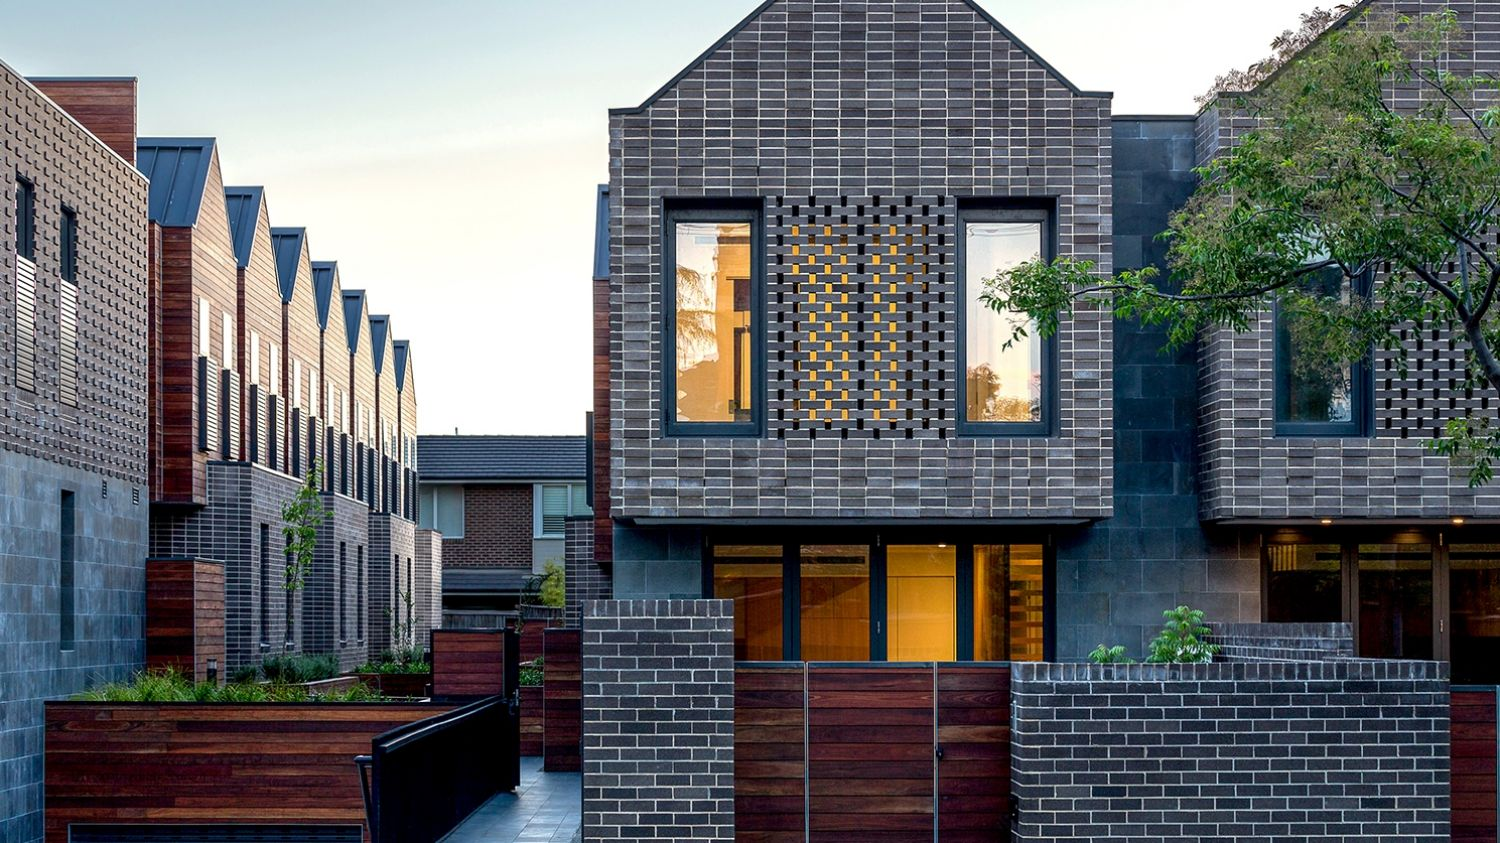 Think brick awards best designs of 2017 masonry design for Architecture 2017